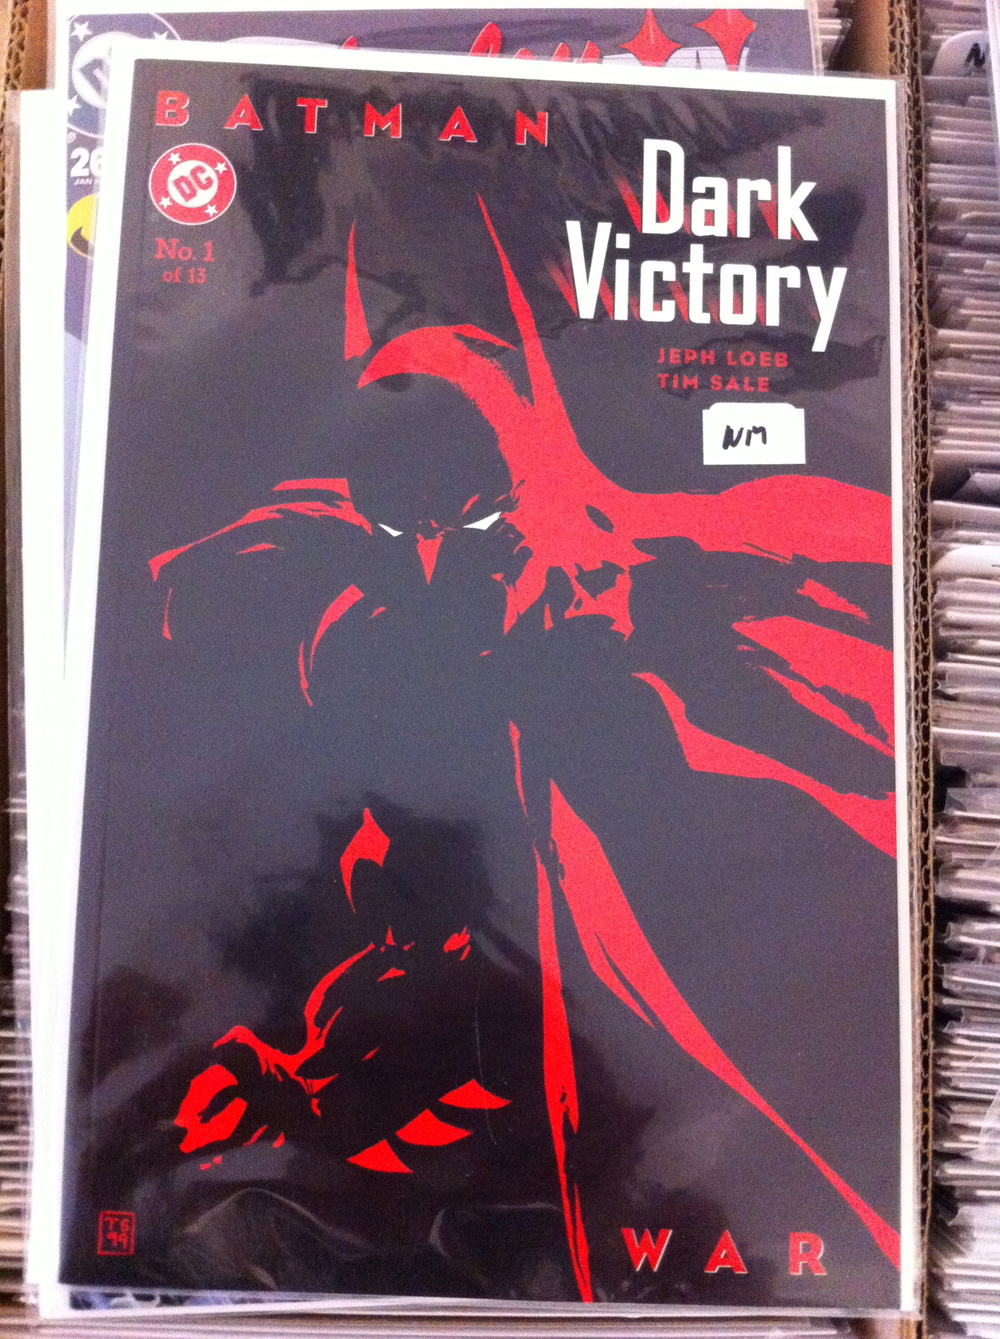 BATMAN DARK VICTORY #1-13 Jeph Loeb and Tim Sale's Sequel to The Long Halloween! One of the best Jeph Loeb Stories right here!